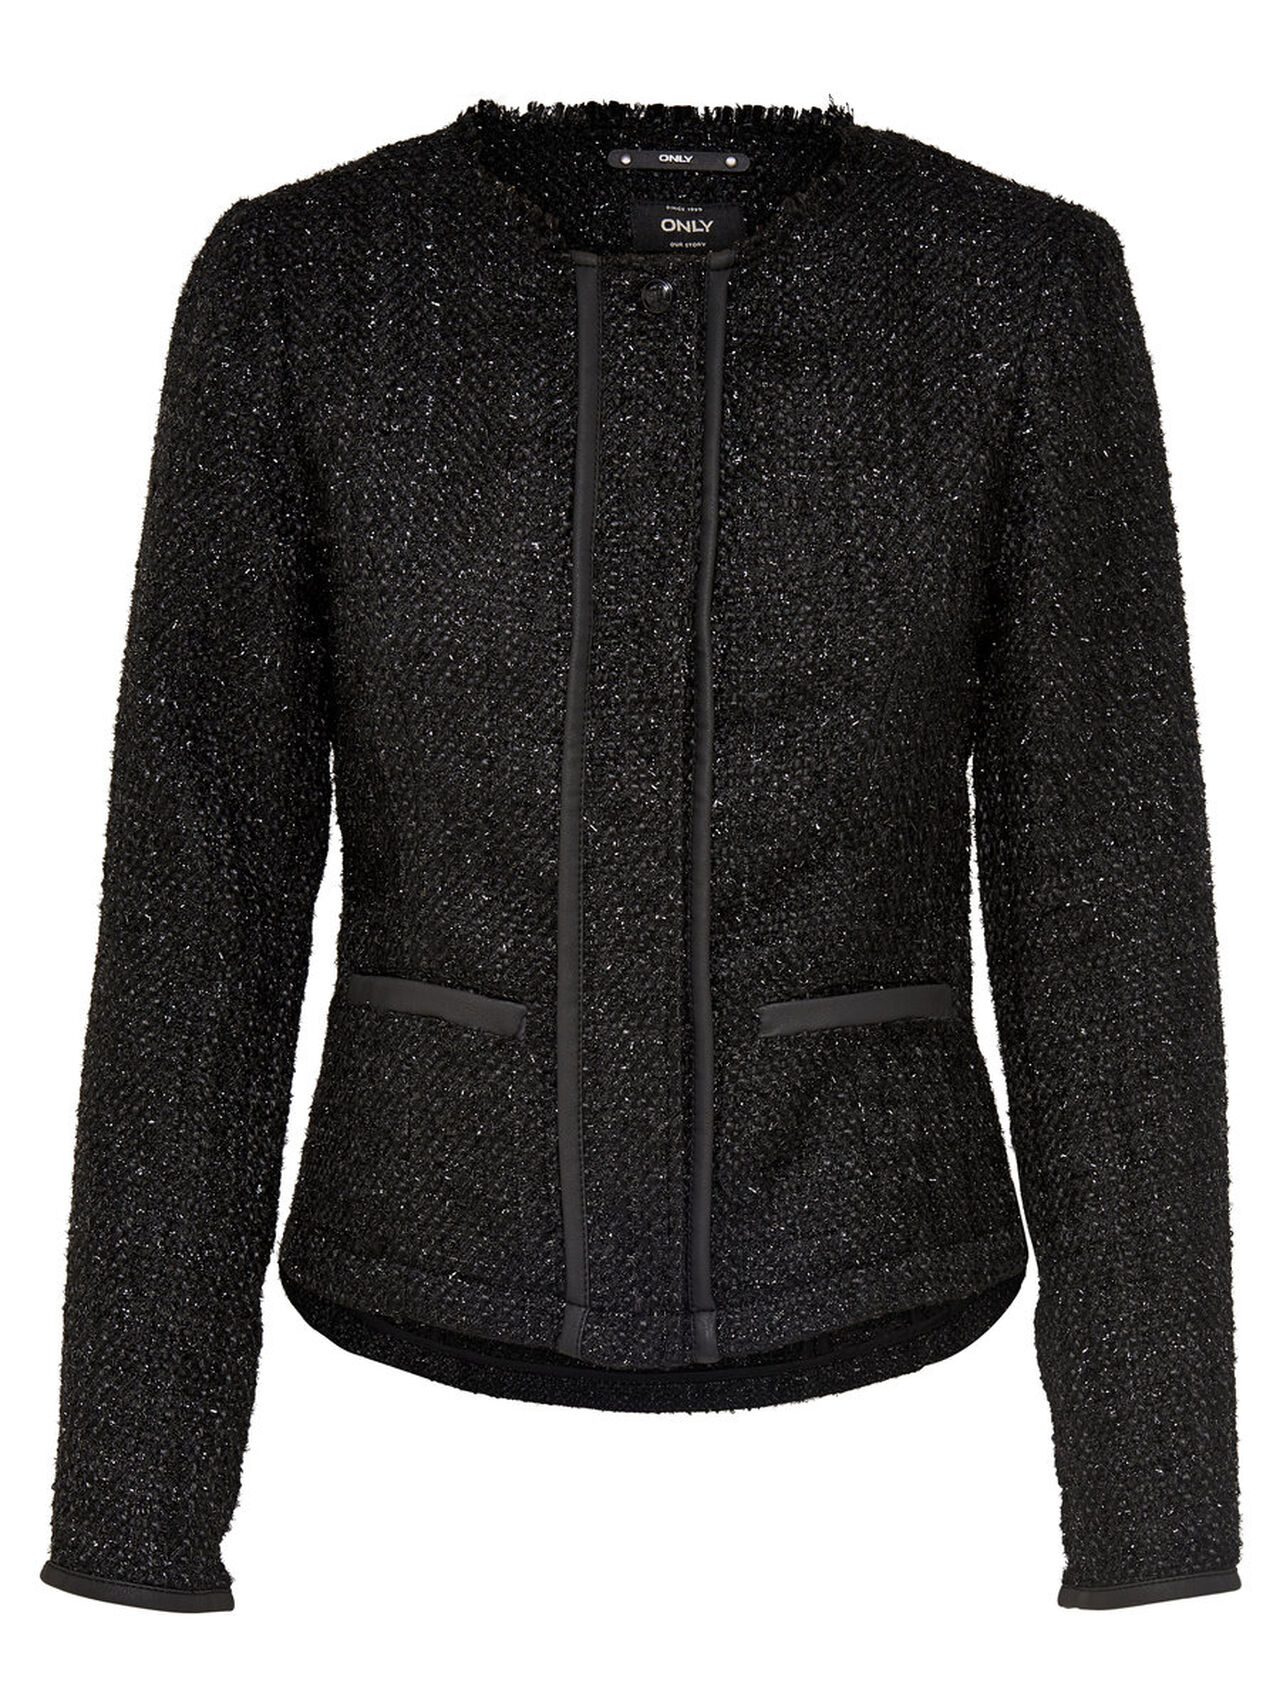 ONLY Boucle Jacket Women Black